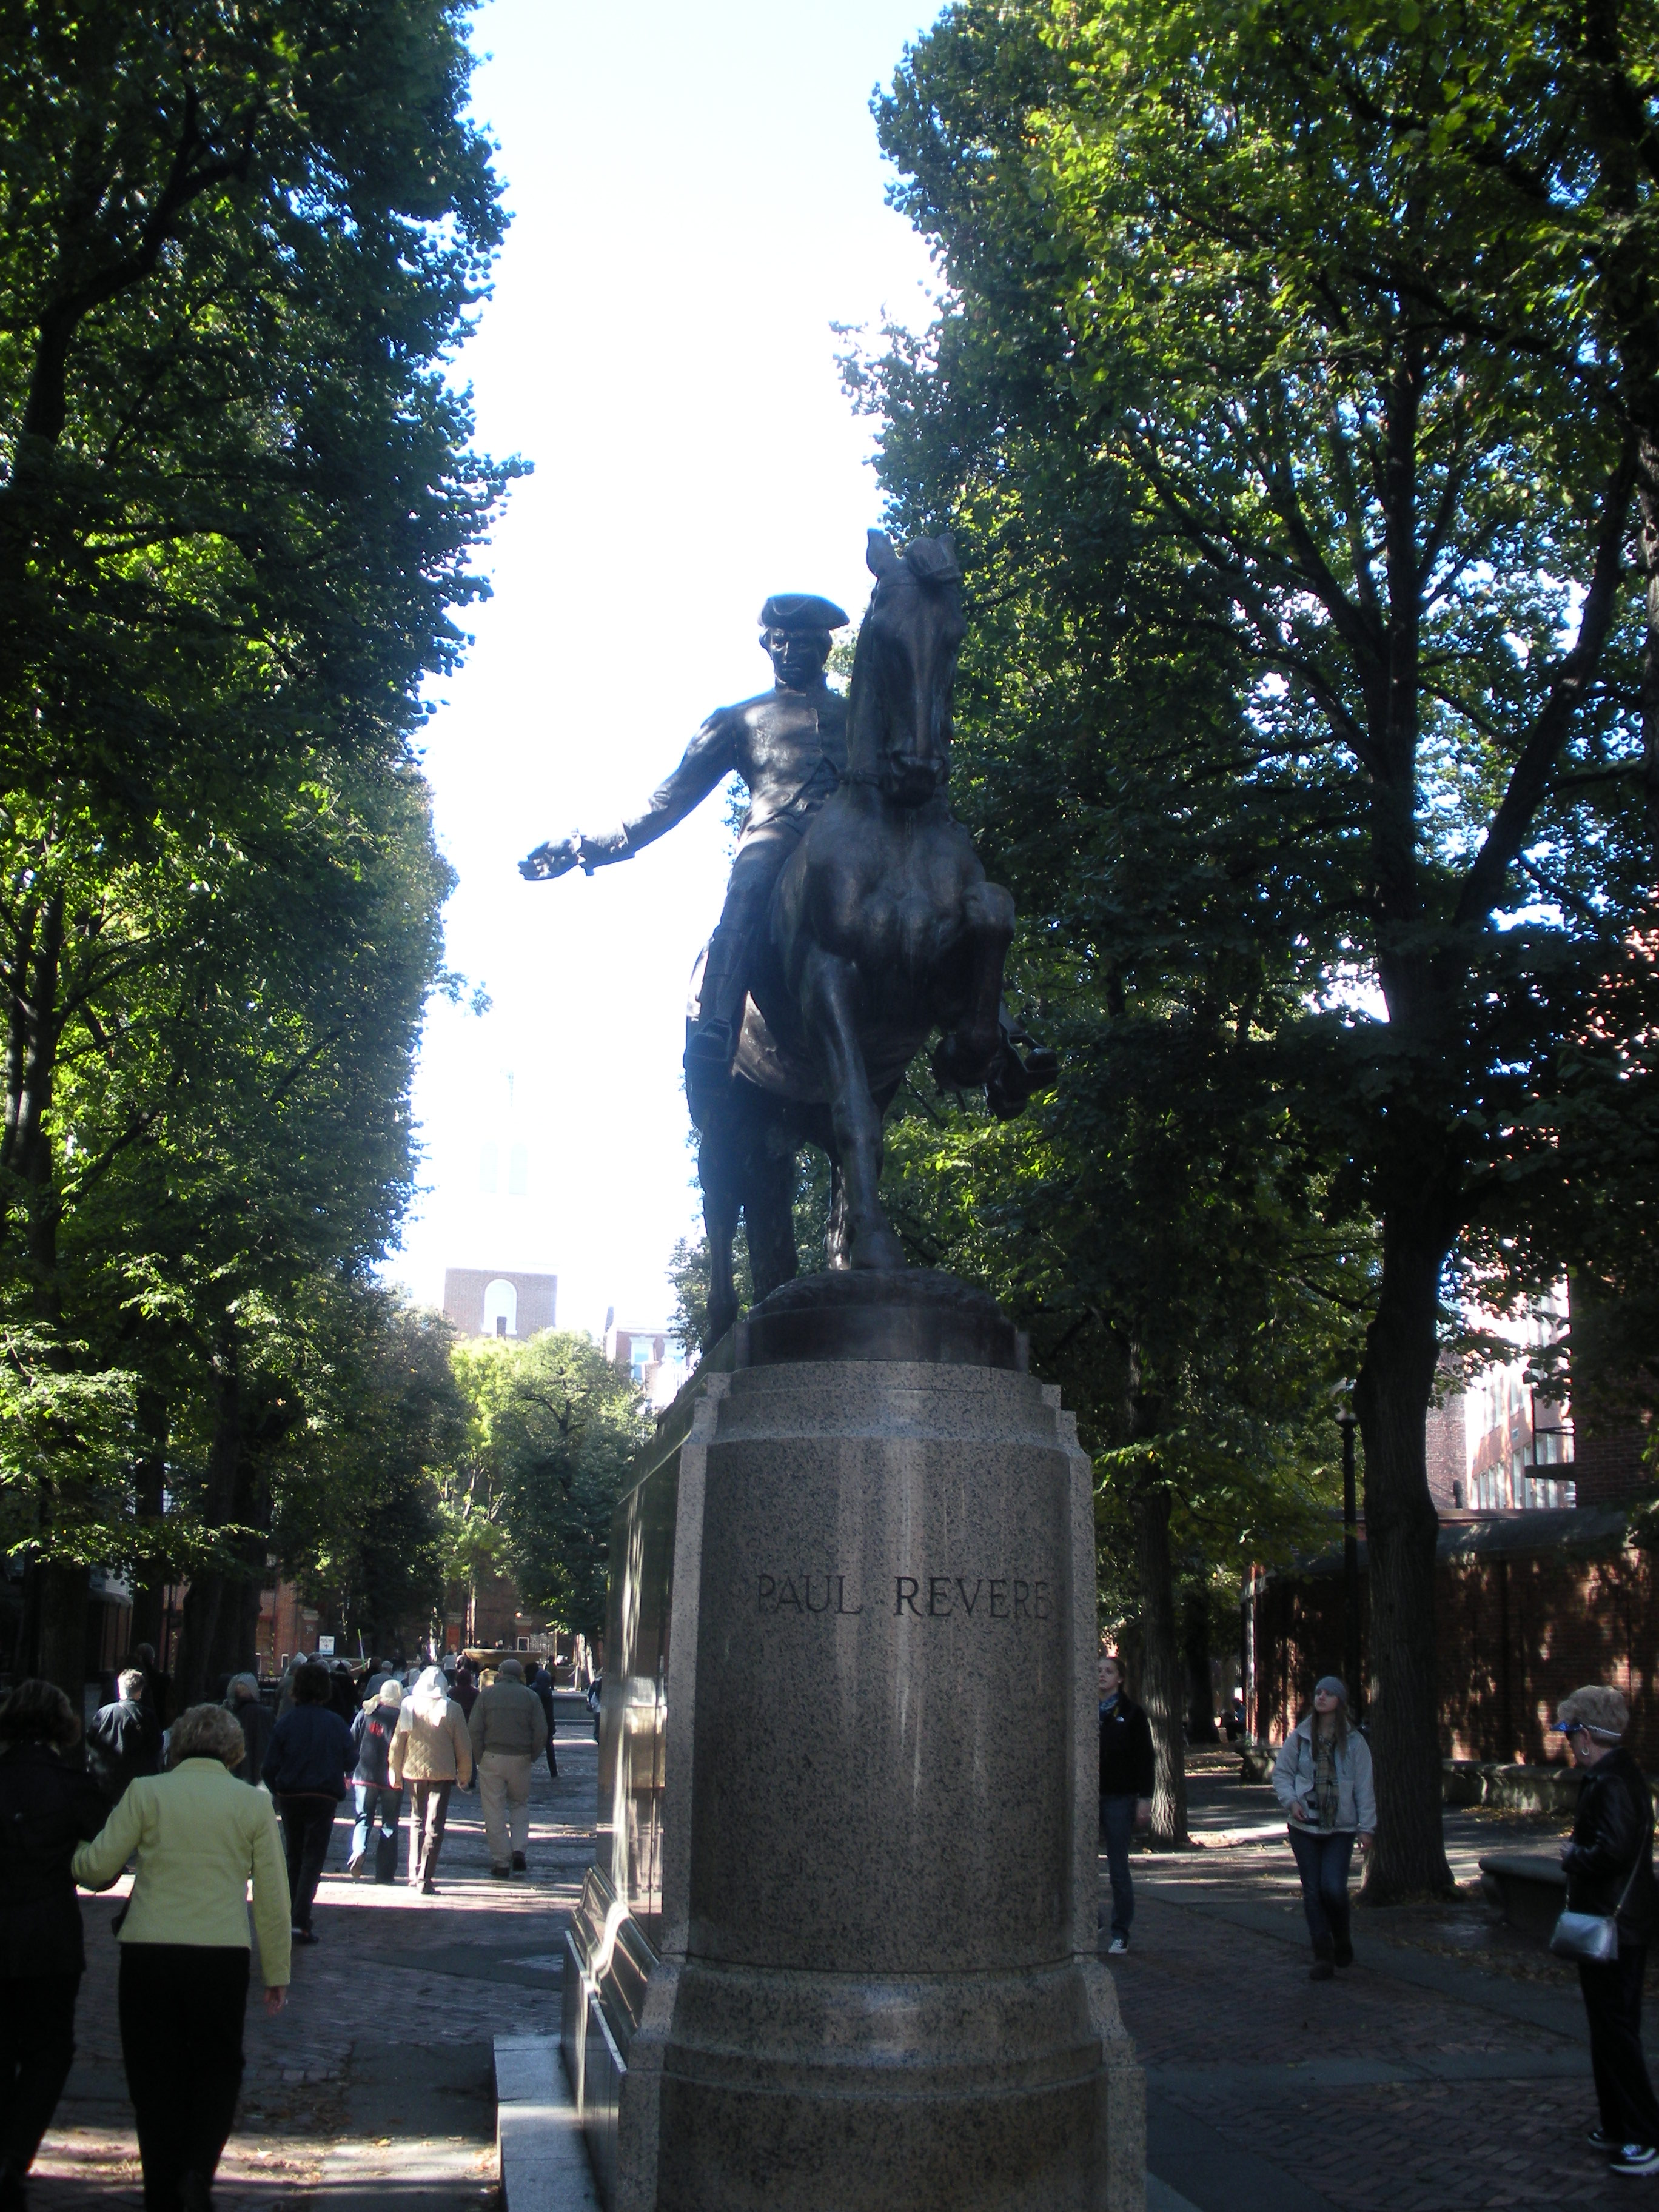 One day in boston what to do if short on time one day in boston paul revere mall solutioingenieria Image collections